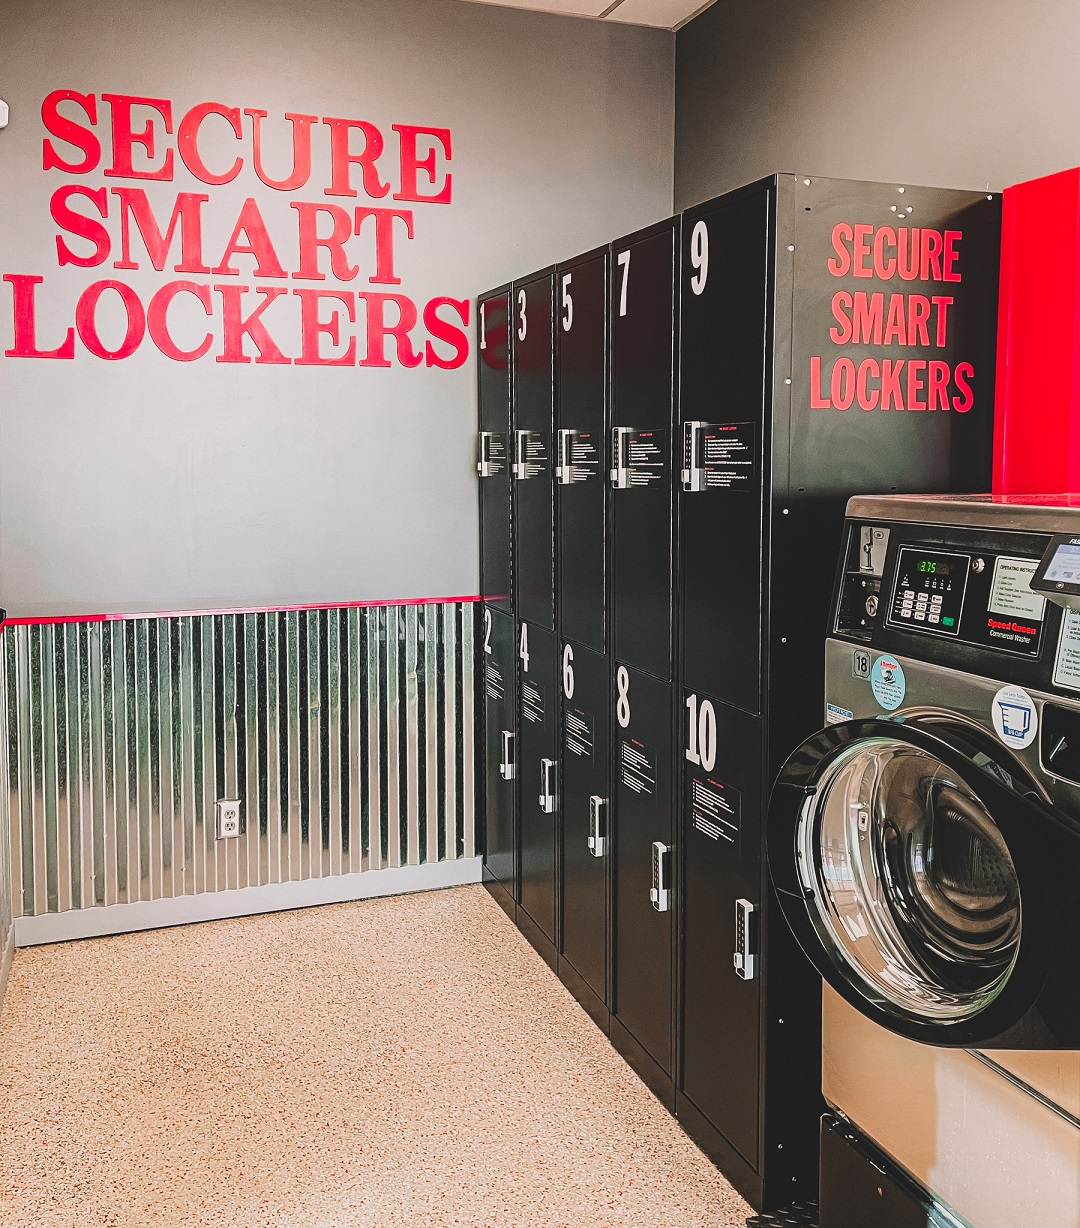 Home Style Laundry Secure Smart Lockers Service